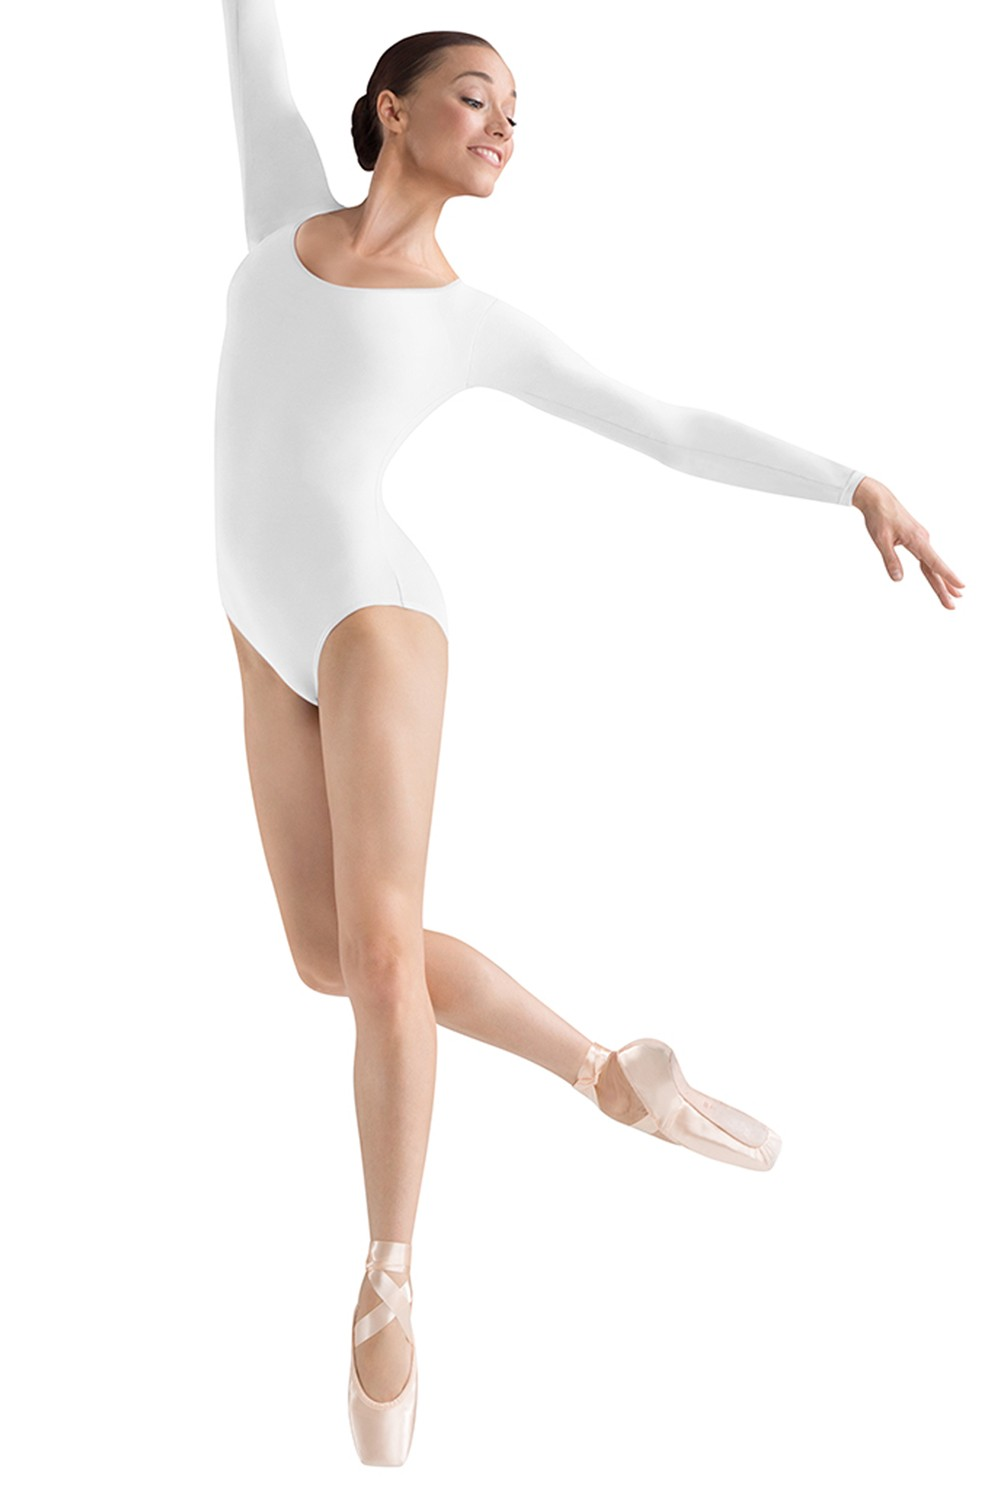 Lepsi Women's Dance Leotards